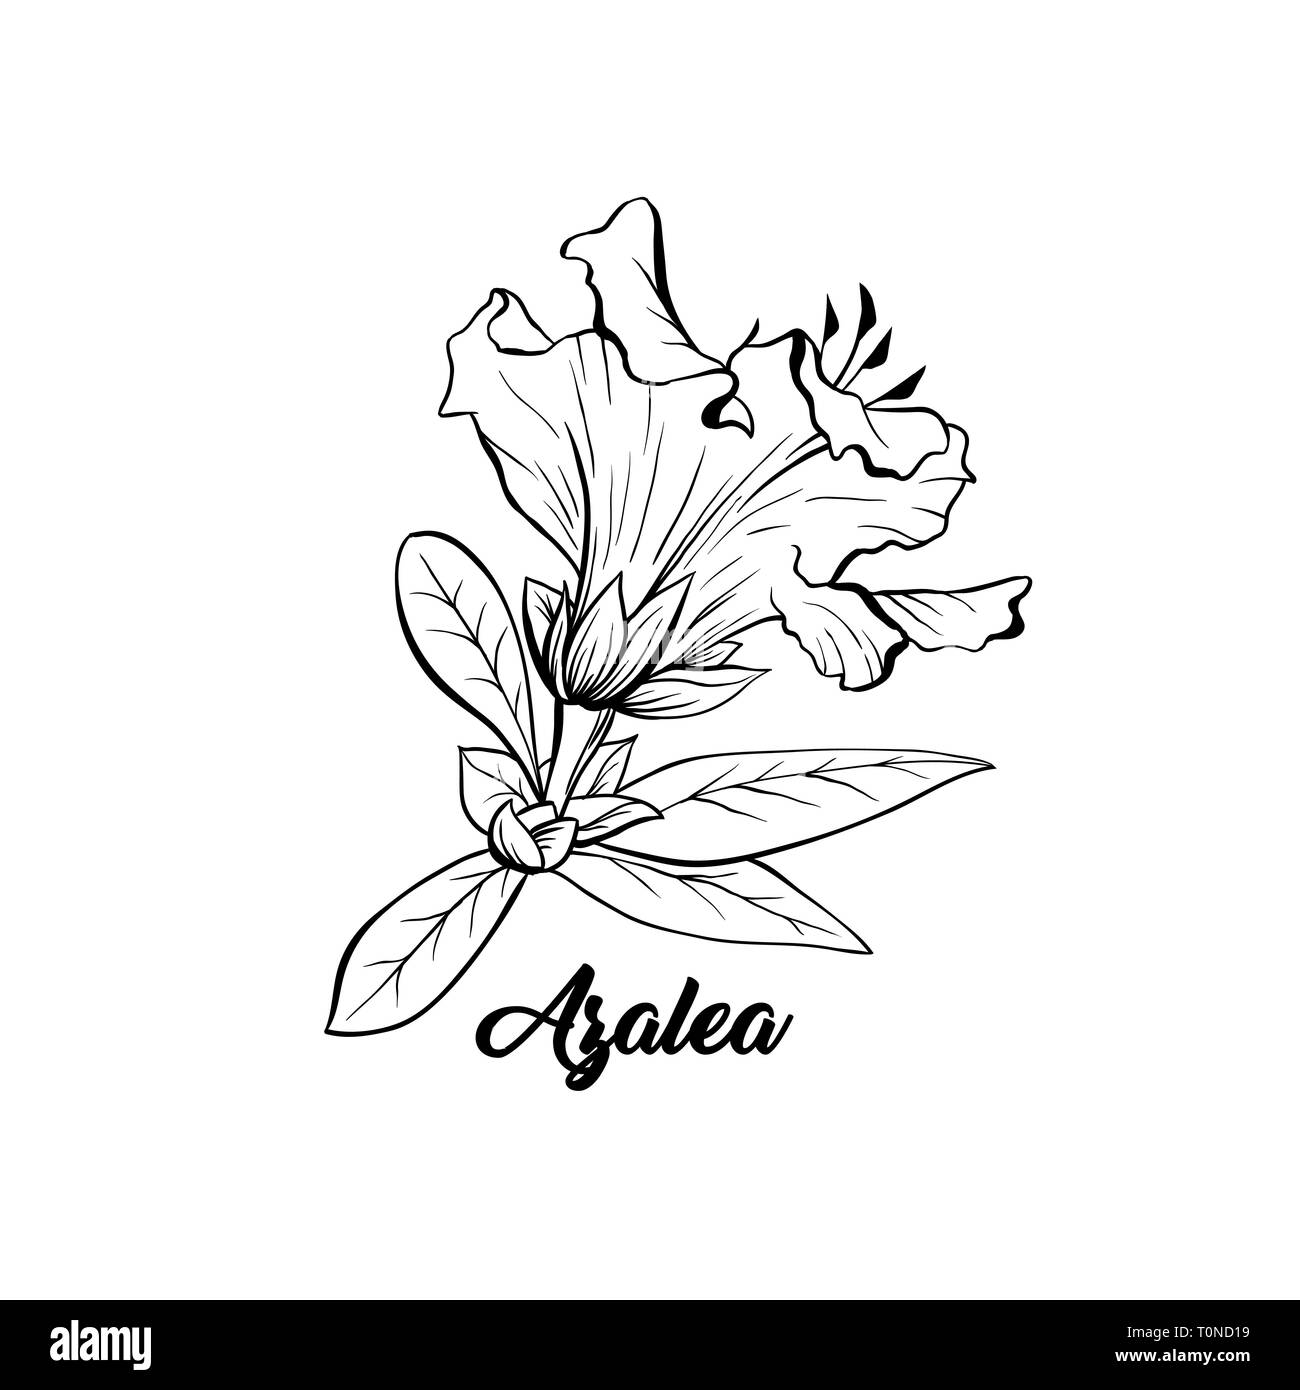 Azalea, ericaceae japonica flower hand drawn illustration. Beautiful blooming plant ink pen sketch. Freehand outline floral blossom engraving. Greeting card monochrome isolated design element - Stock Vector